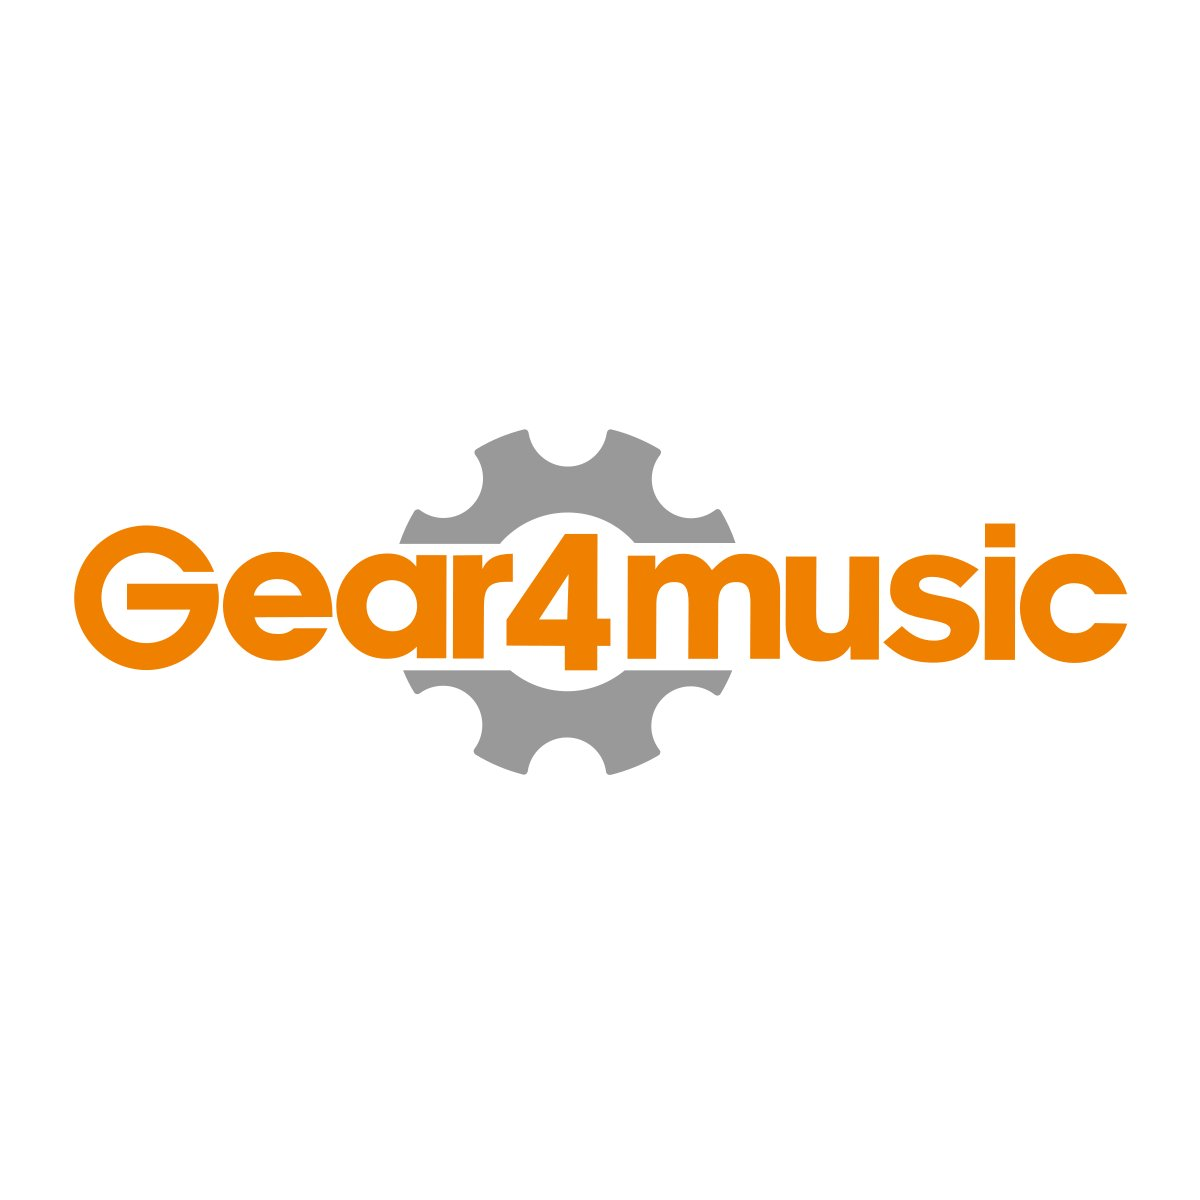 Double French Horn by Gear4music